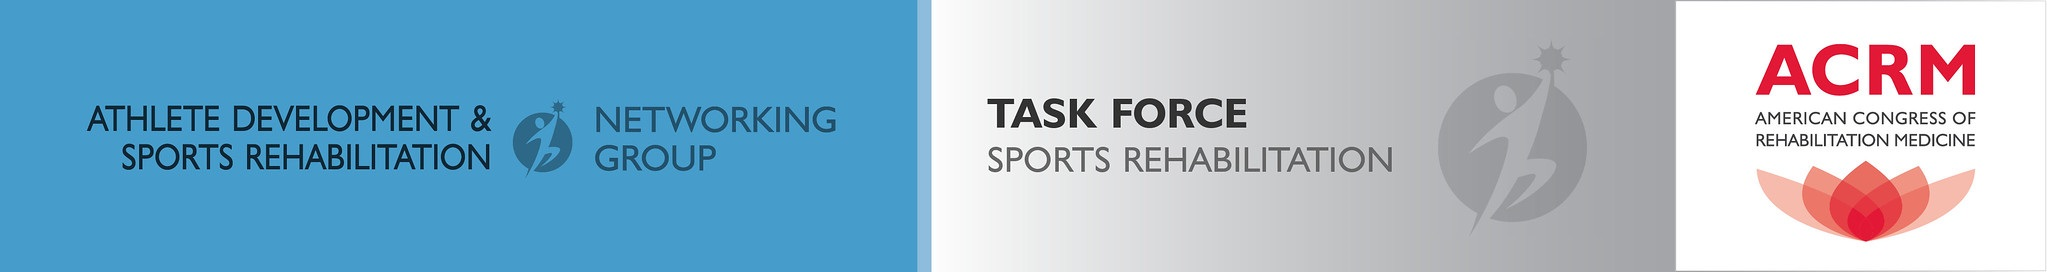 ADSRNG Sports Rehabilitation Task Force header